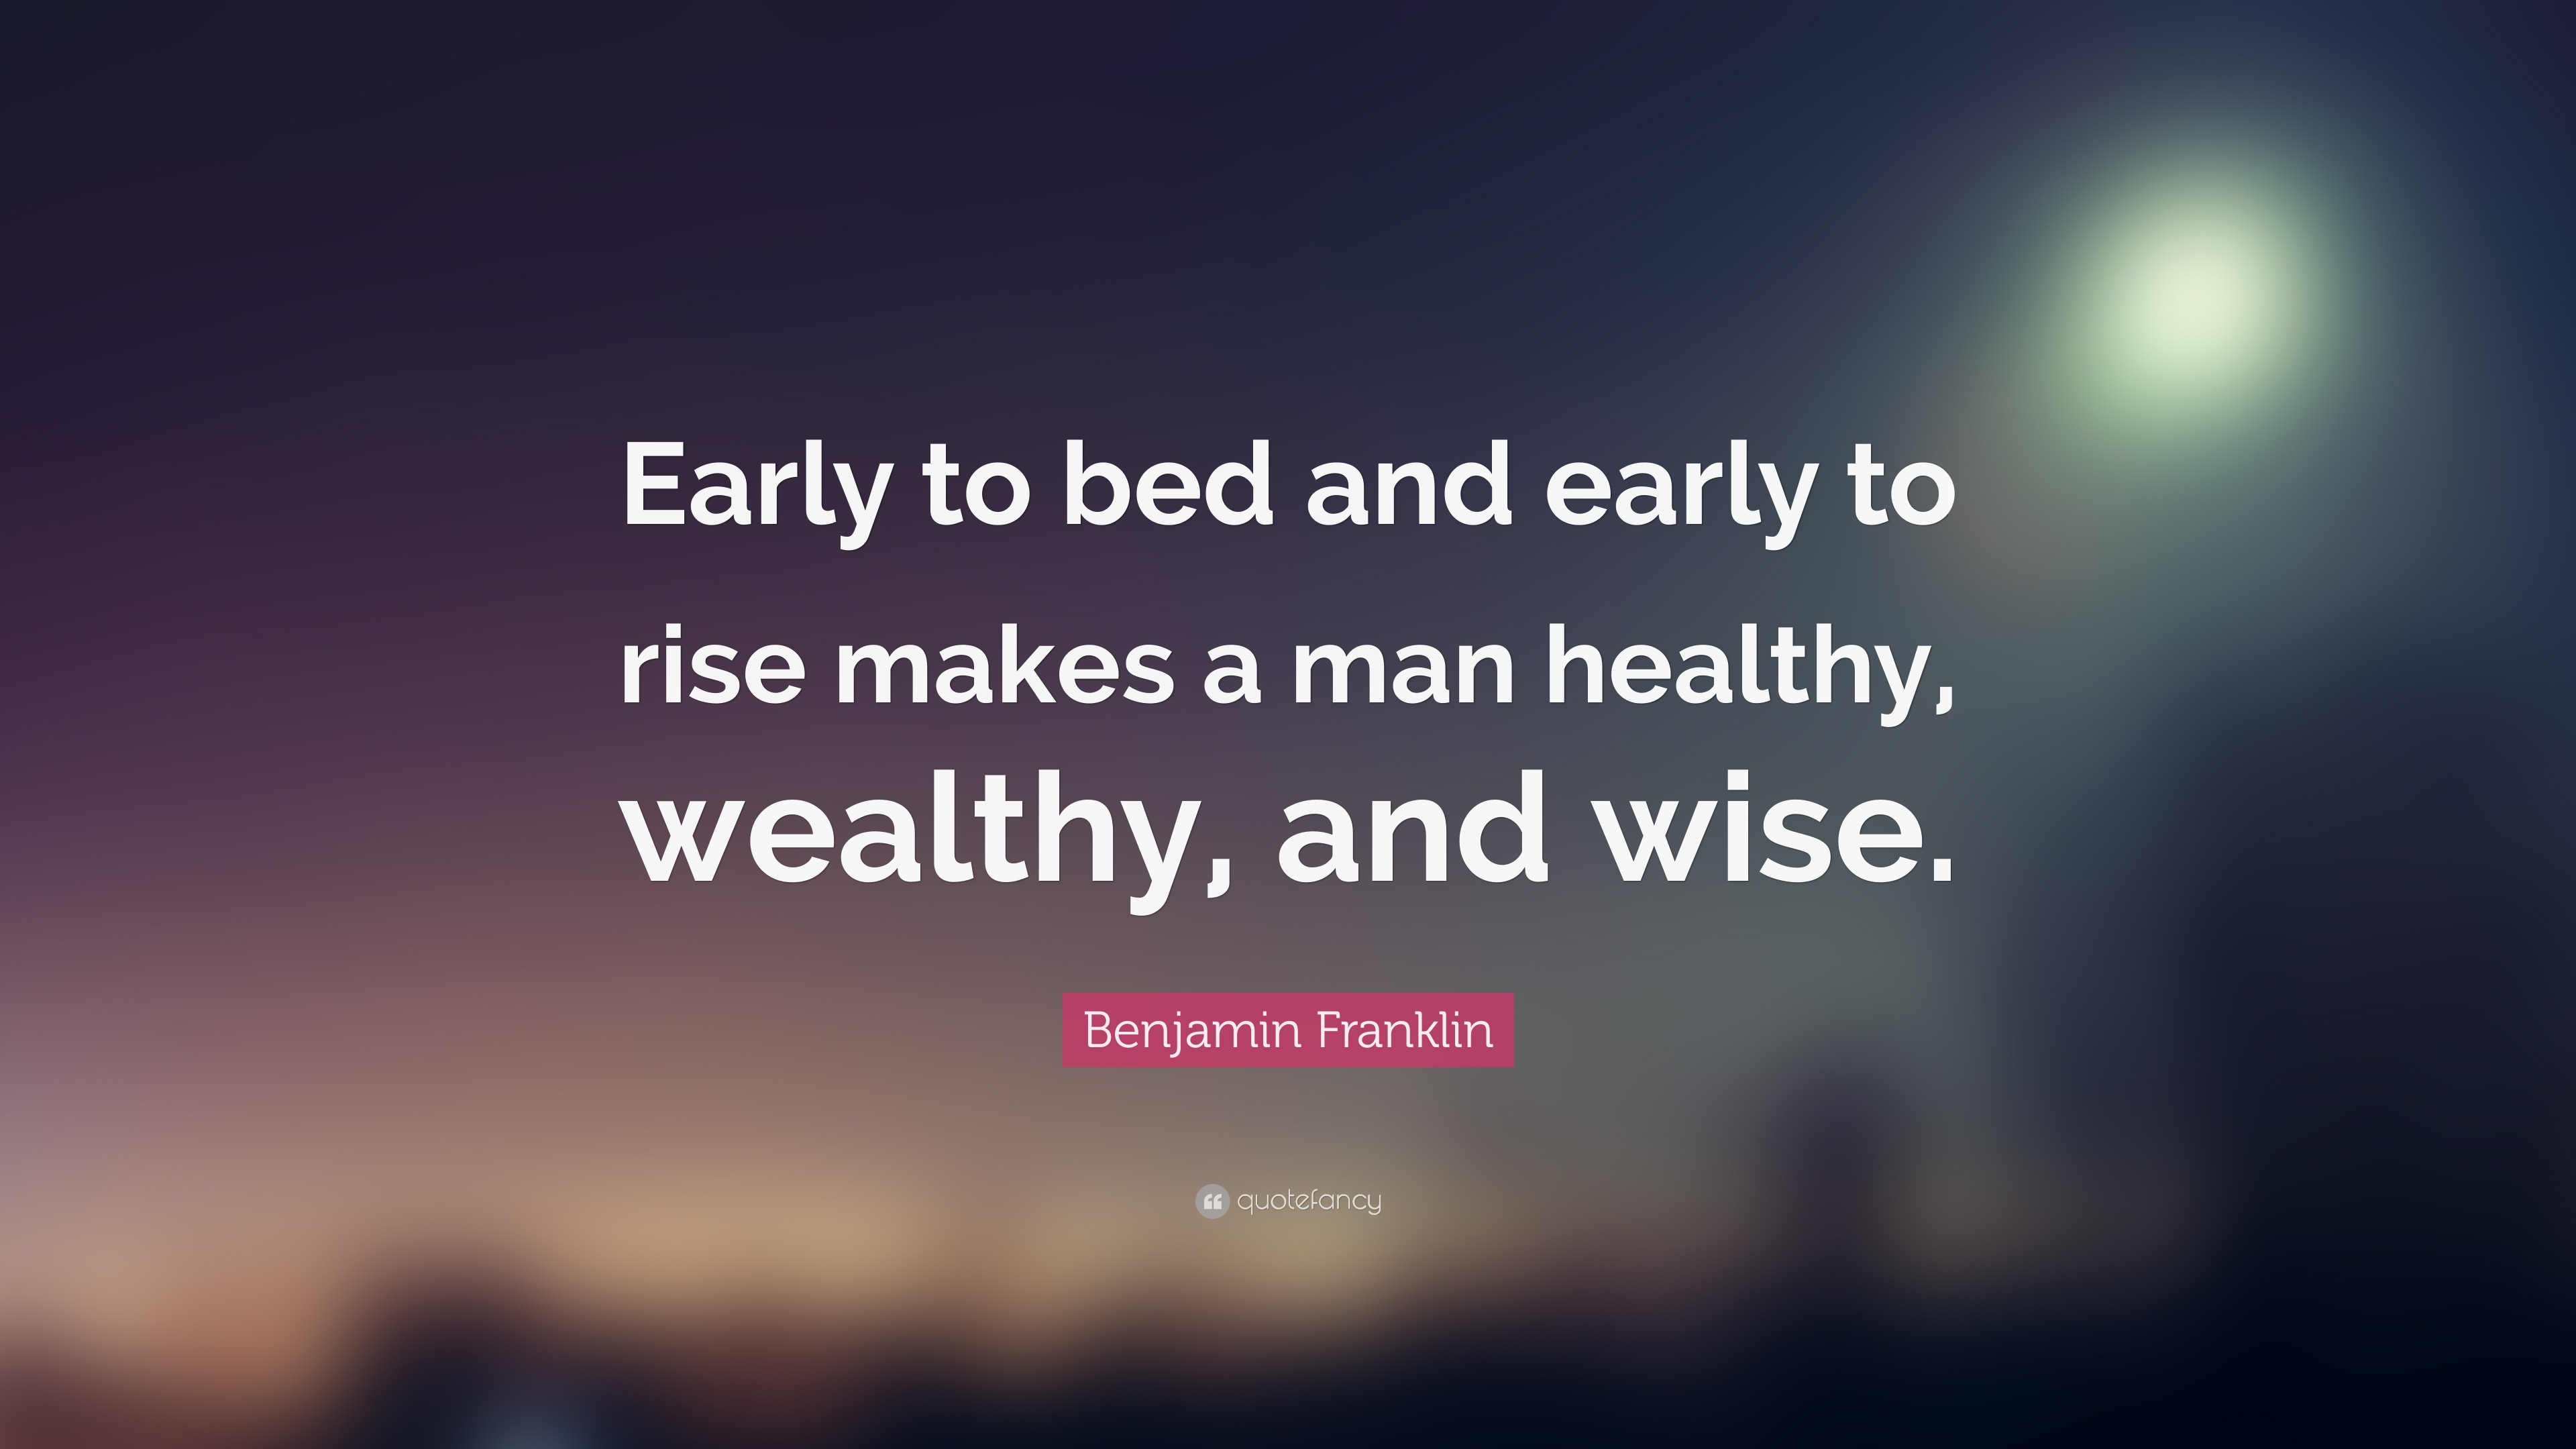 Benjamin Franklin Quote u201cEarly to bed and